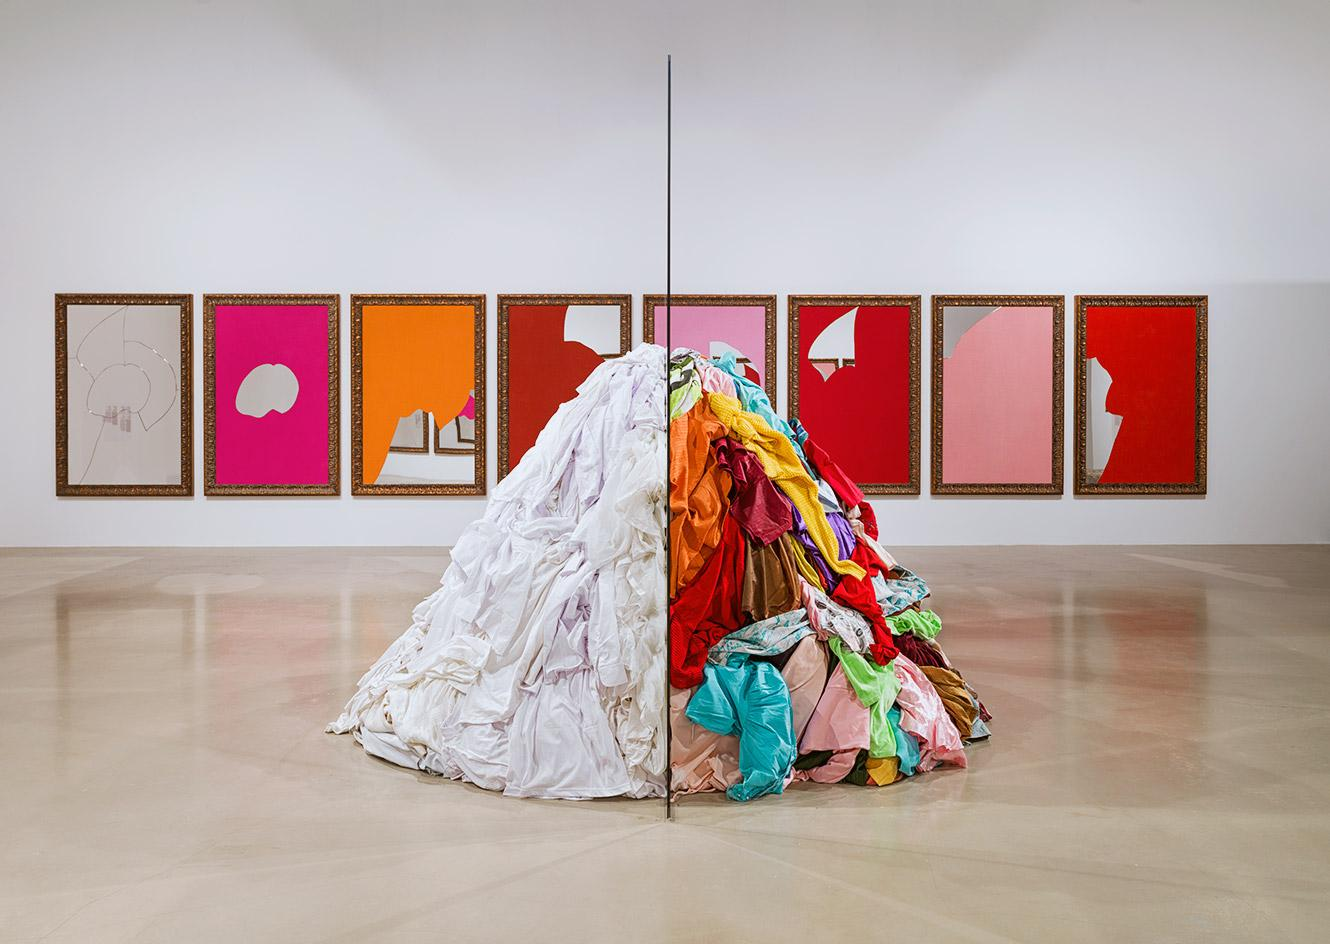 Installation view of 'Do It' by Michelangelo Pistoletto at Yarat Contemporary Art Centre, Baku